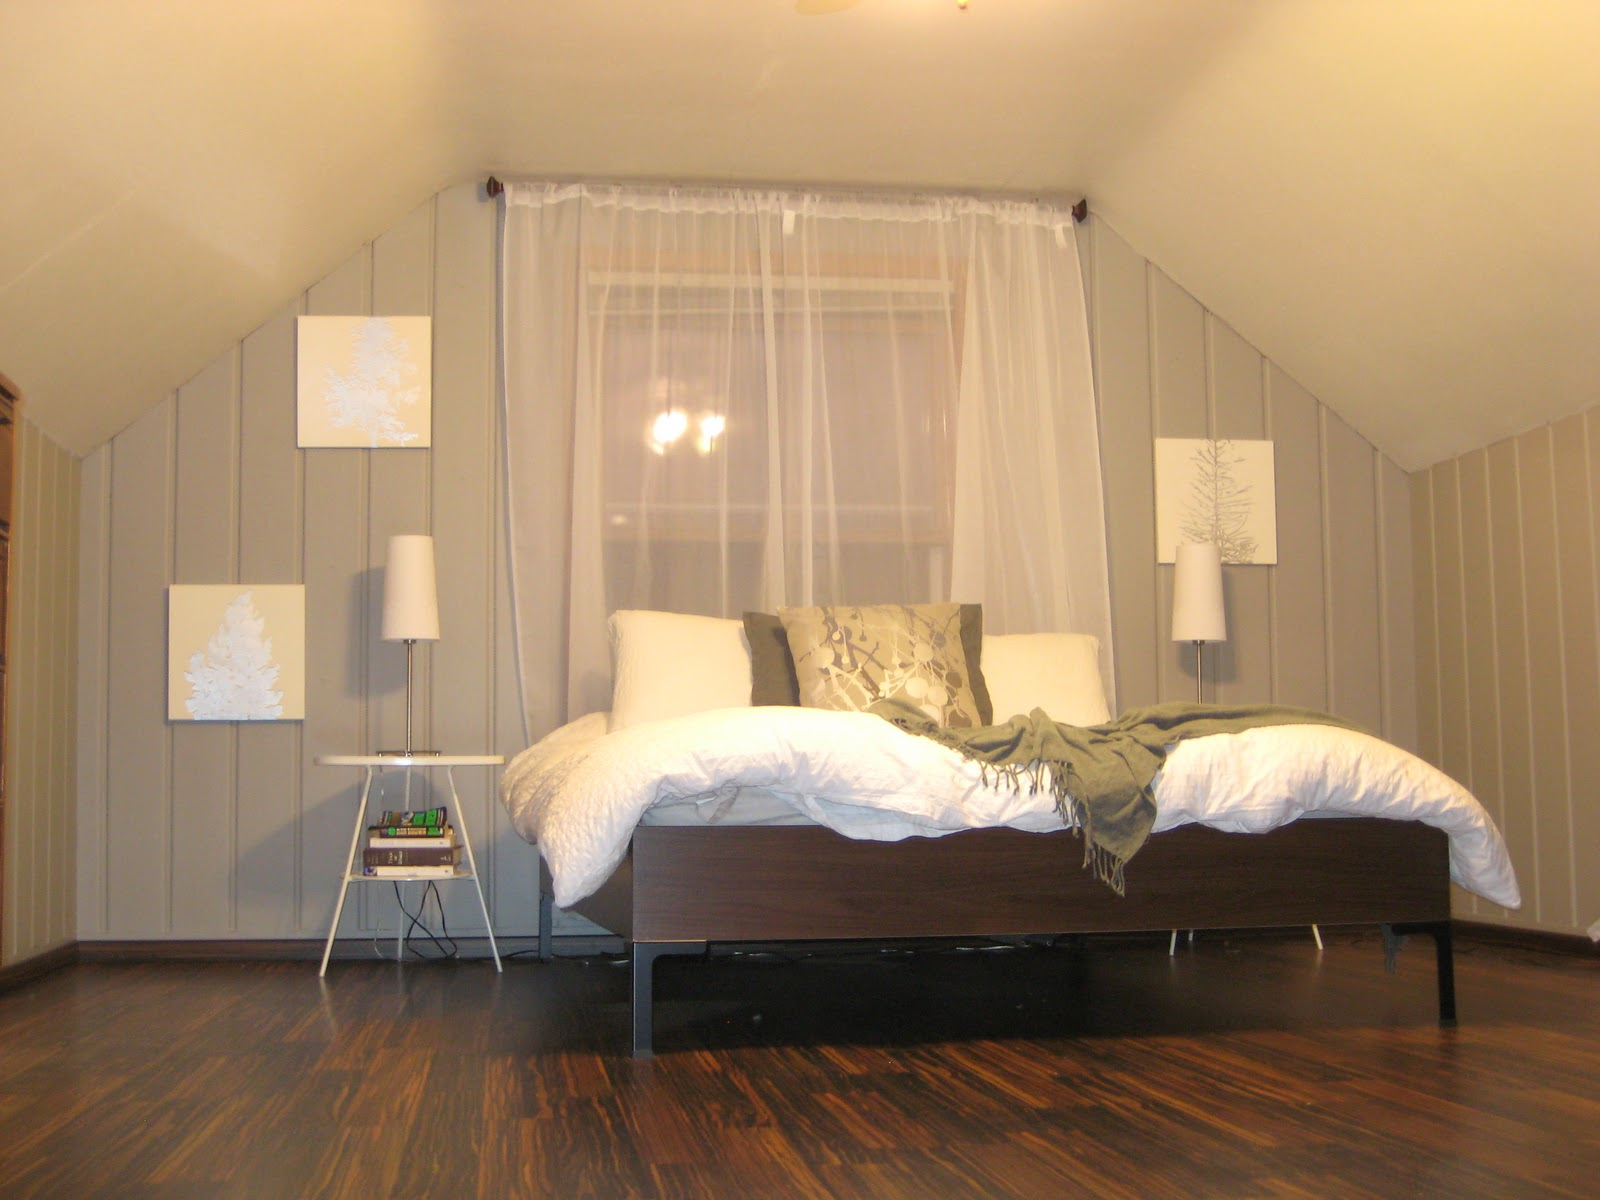 Remodelaholic | Painting Over Knotty Pine Paneling ...